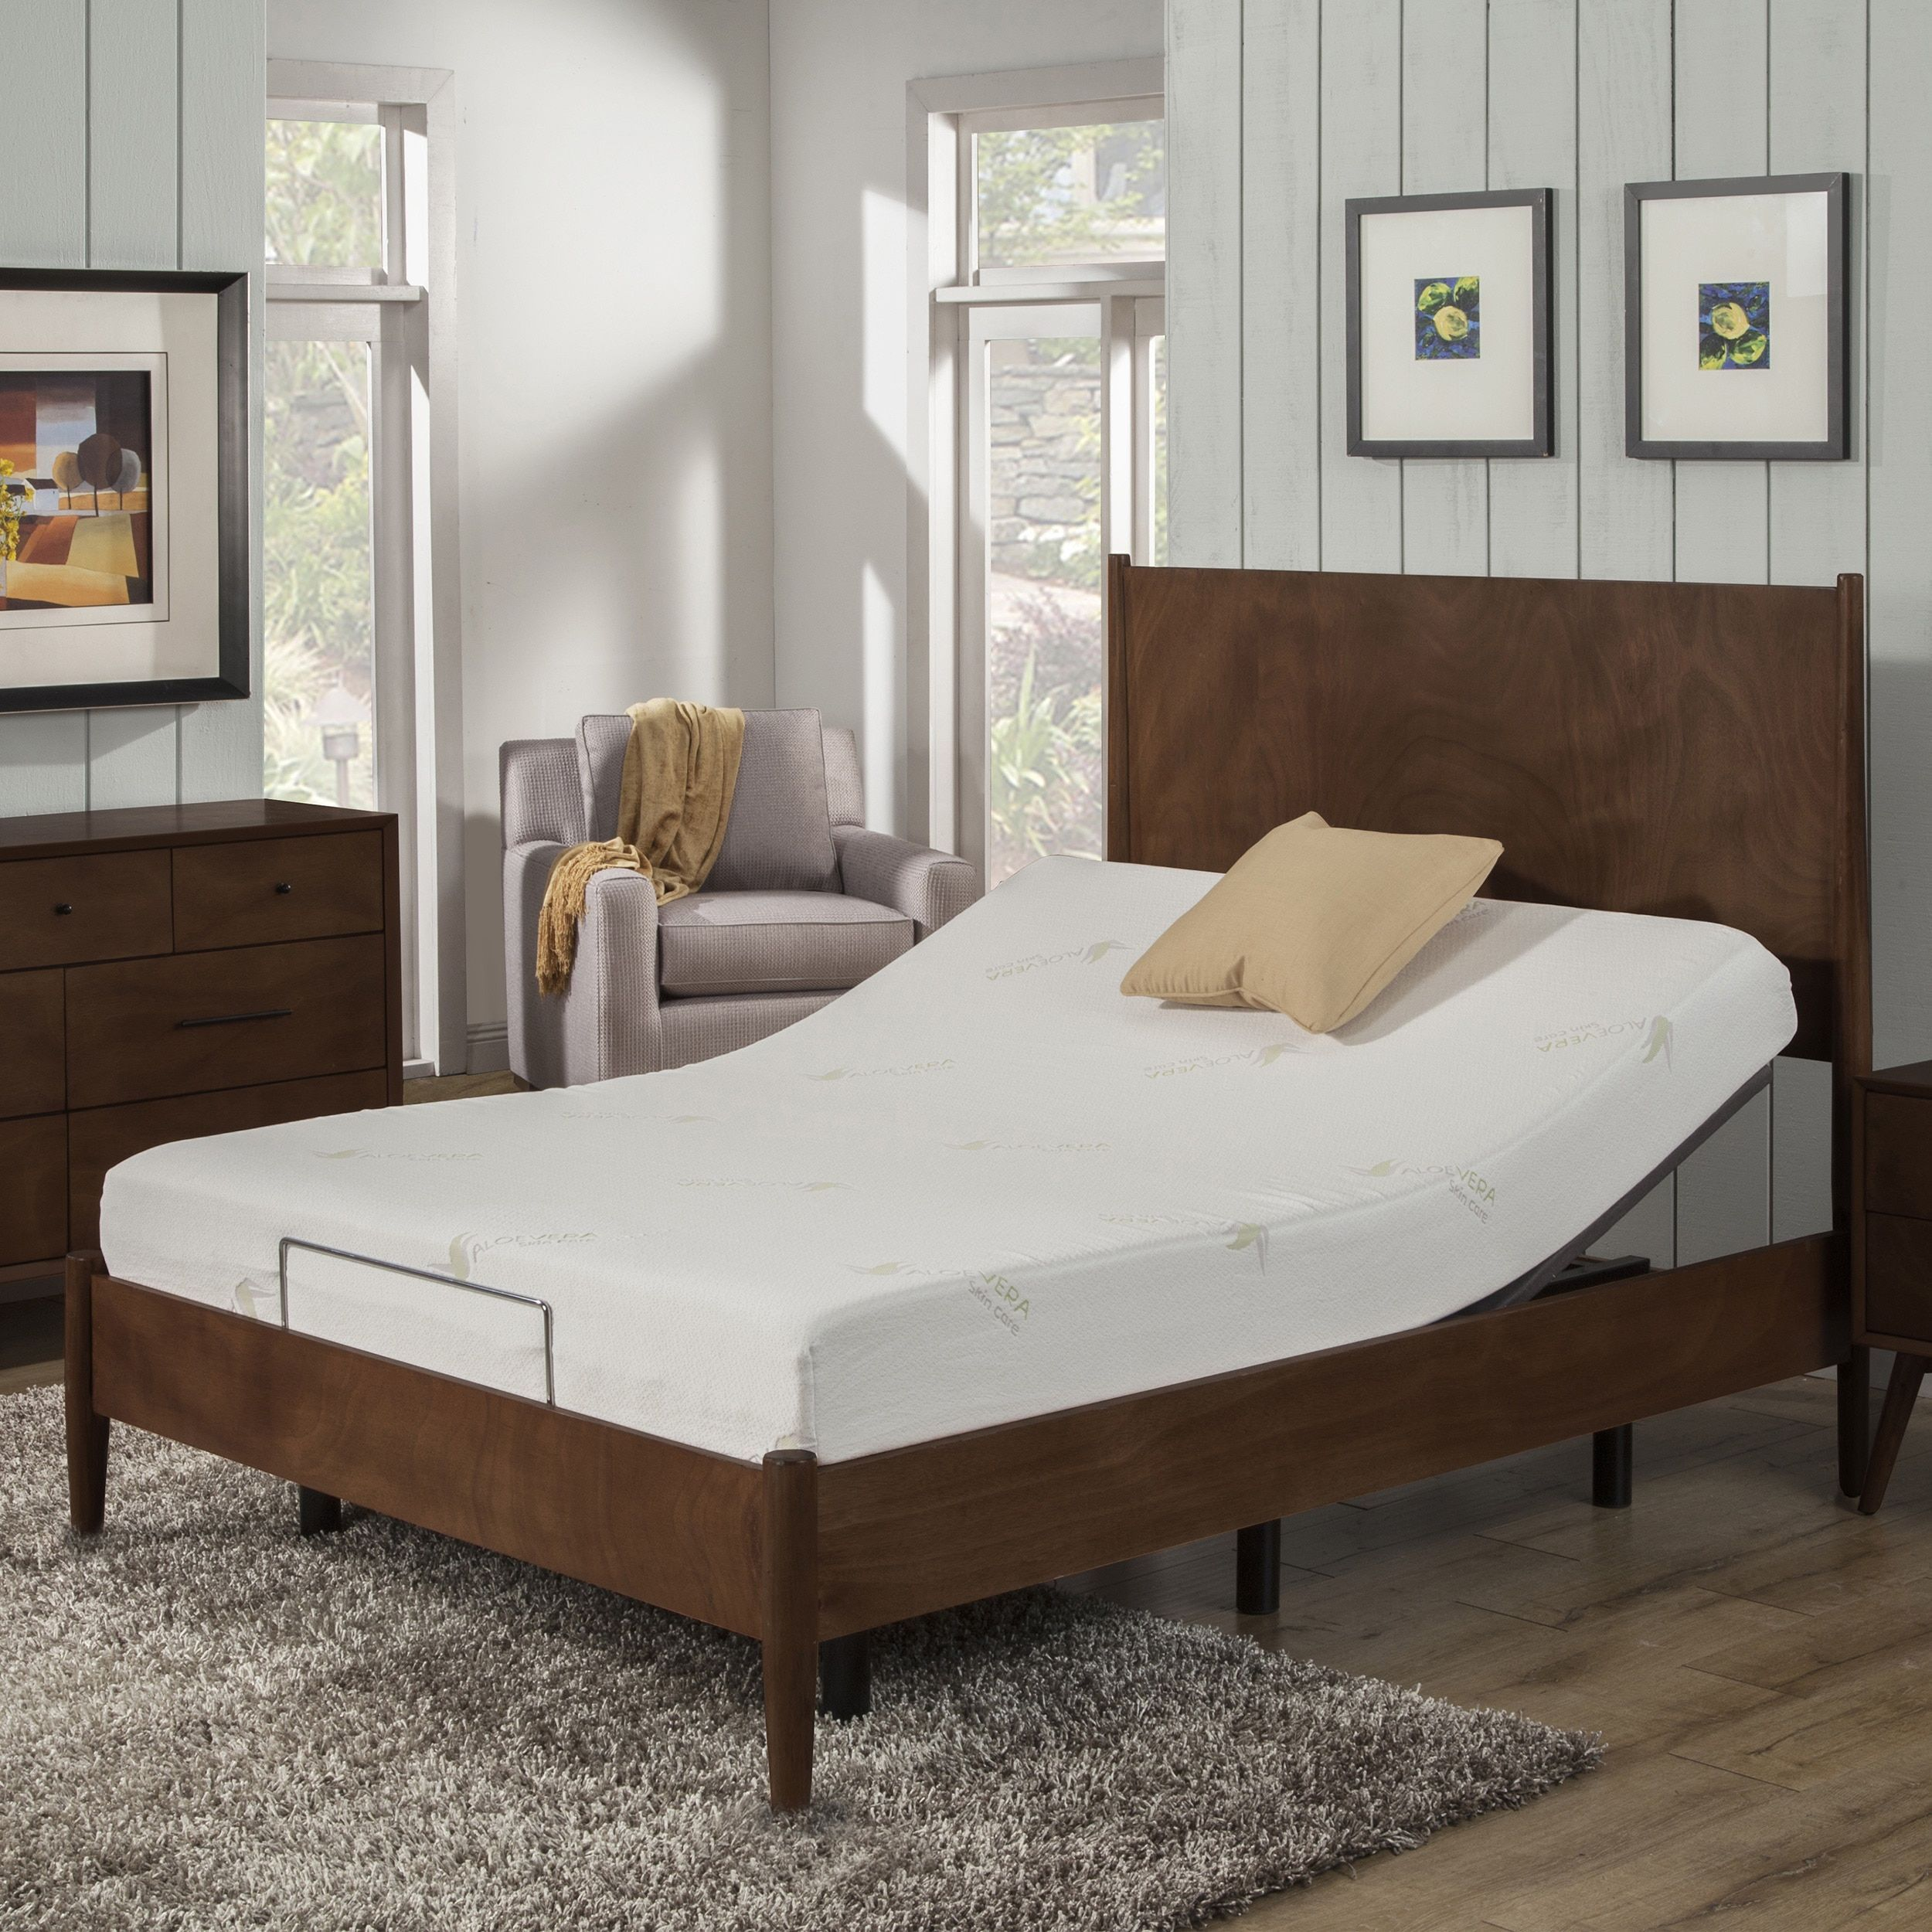 Ac Pacific Aloe Vera 8 Inch Memory Foam Mattress And Adjustable Base Set Products Memory Foam Adjustable Beds Bed Base